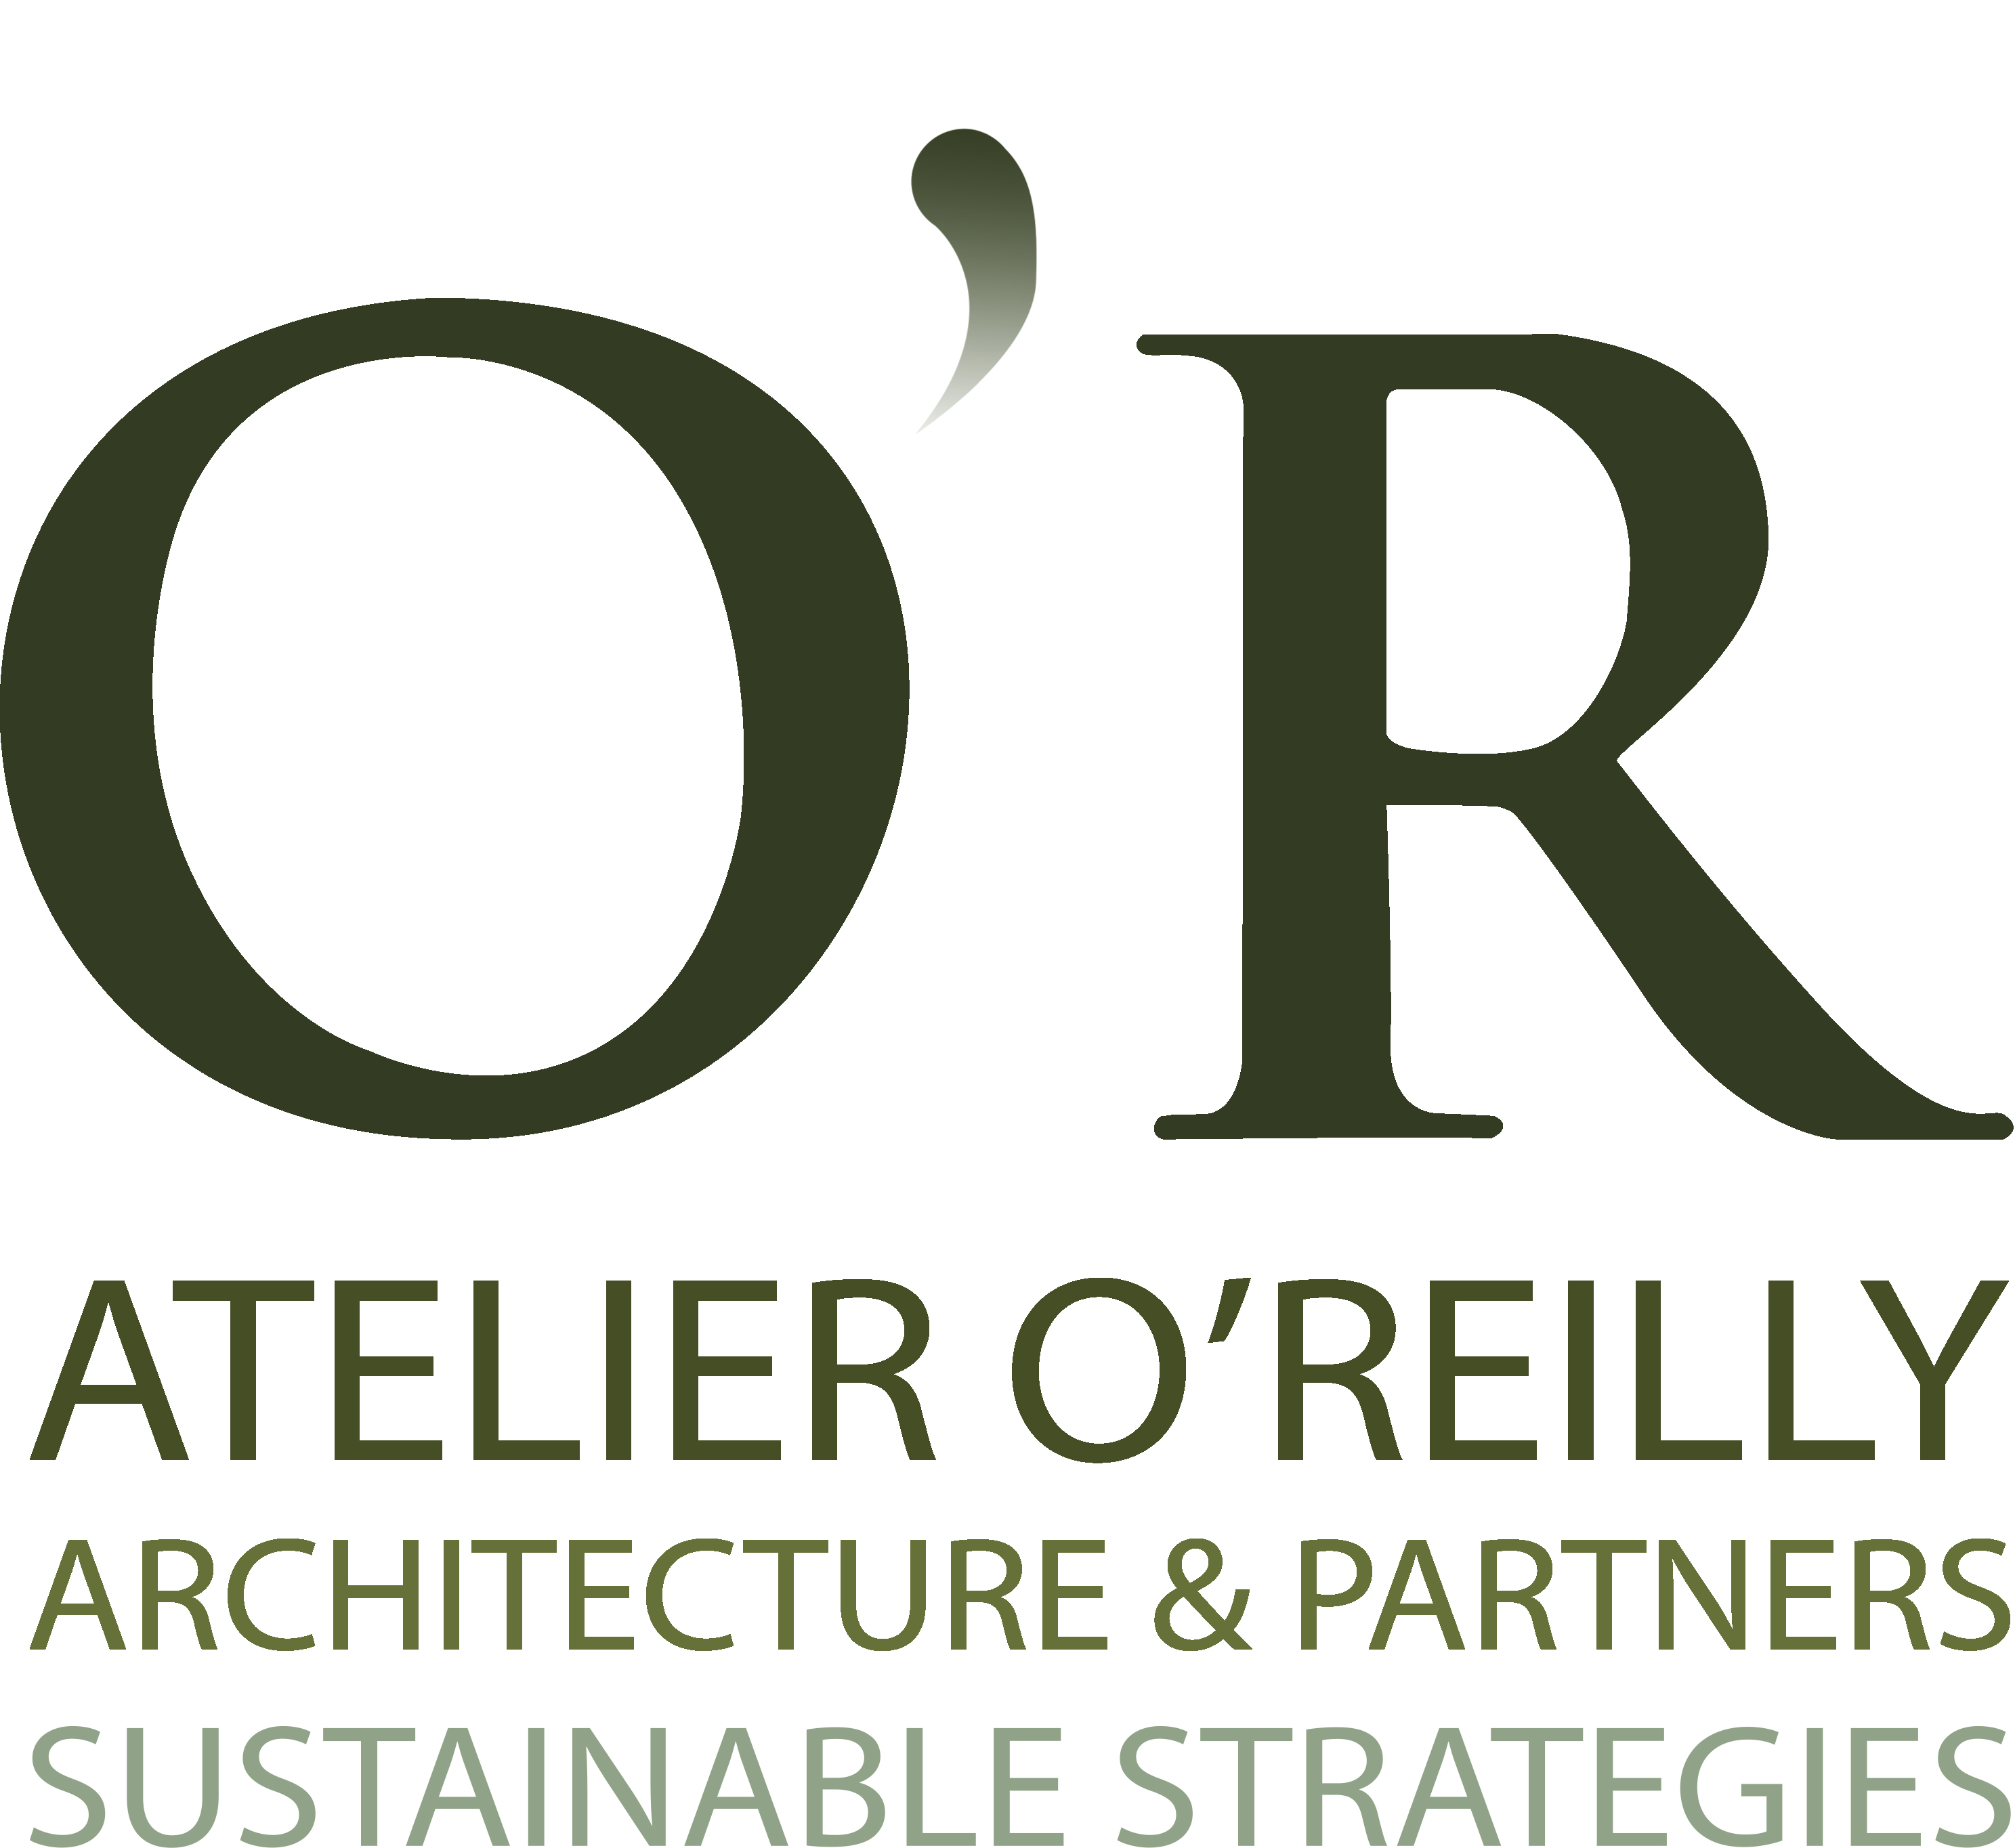 Atelier O'reilly Architecture & Partners